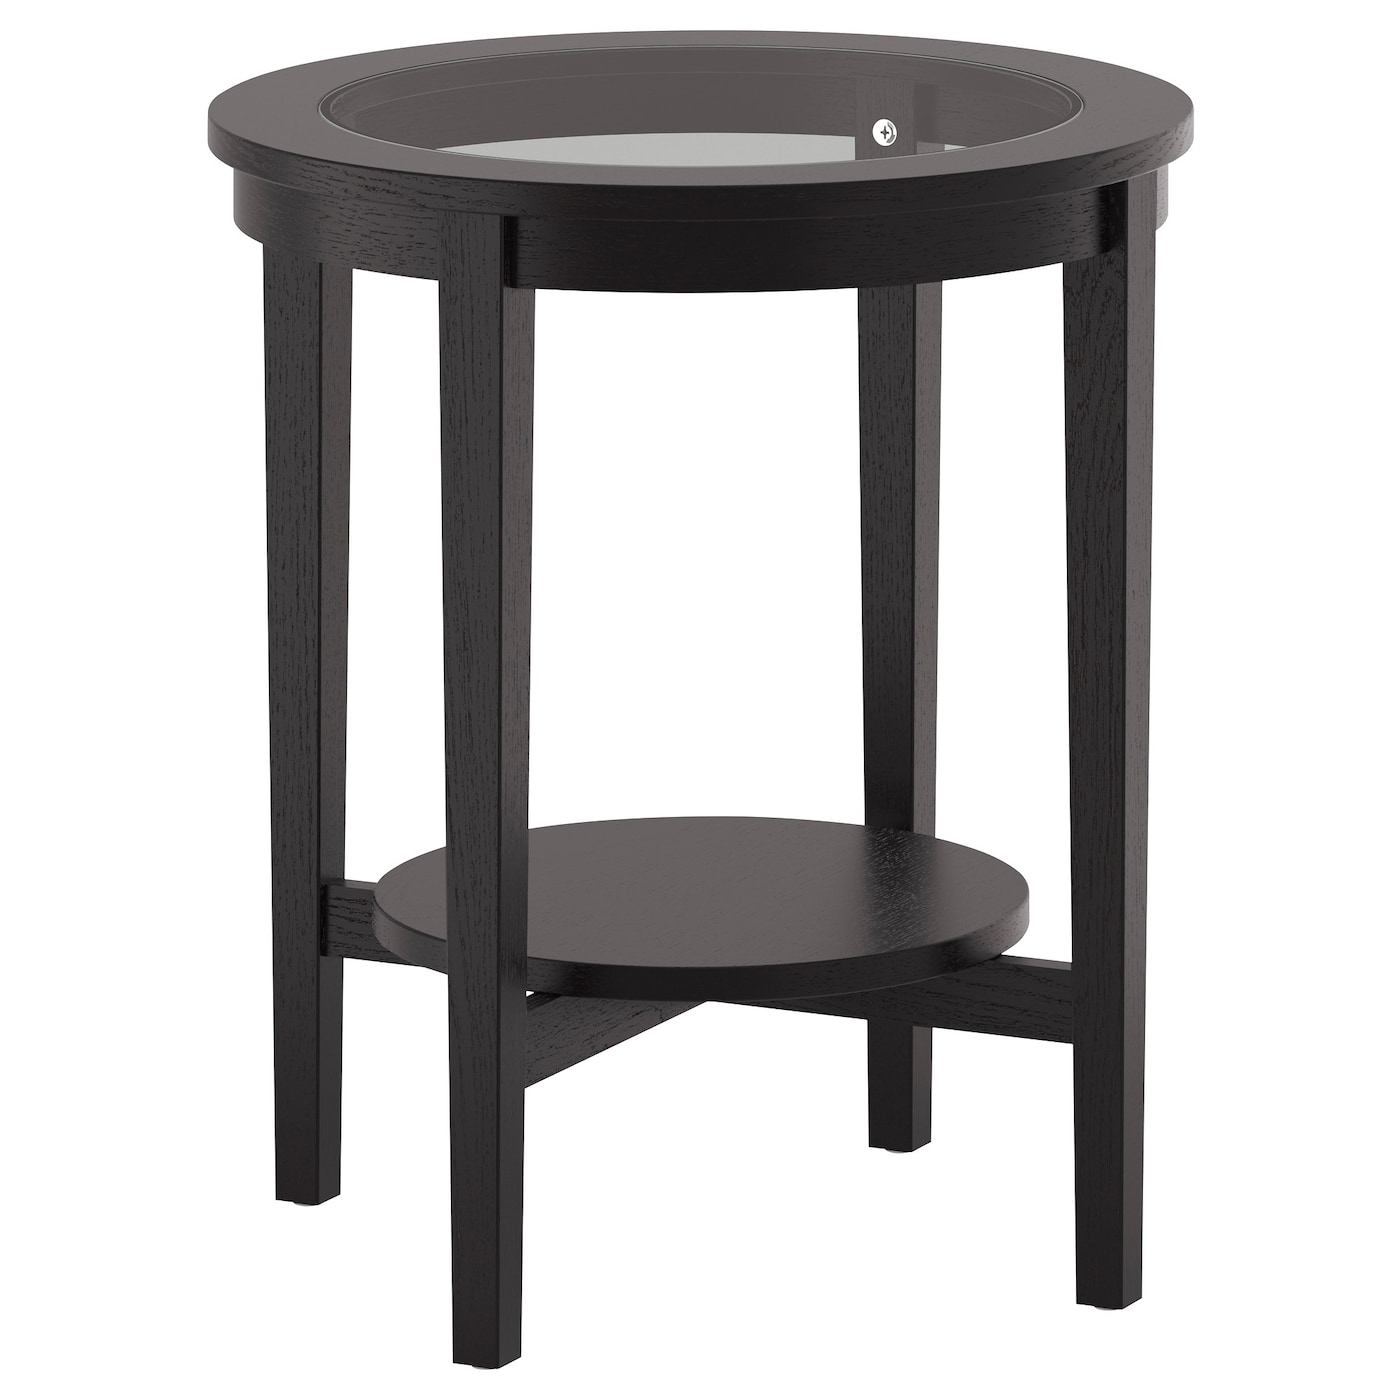 Hemnes Coffee Table Black Brown 90x90 Cm: MALMSTA Side Table Black-brown 54 Cm